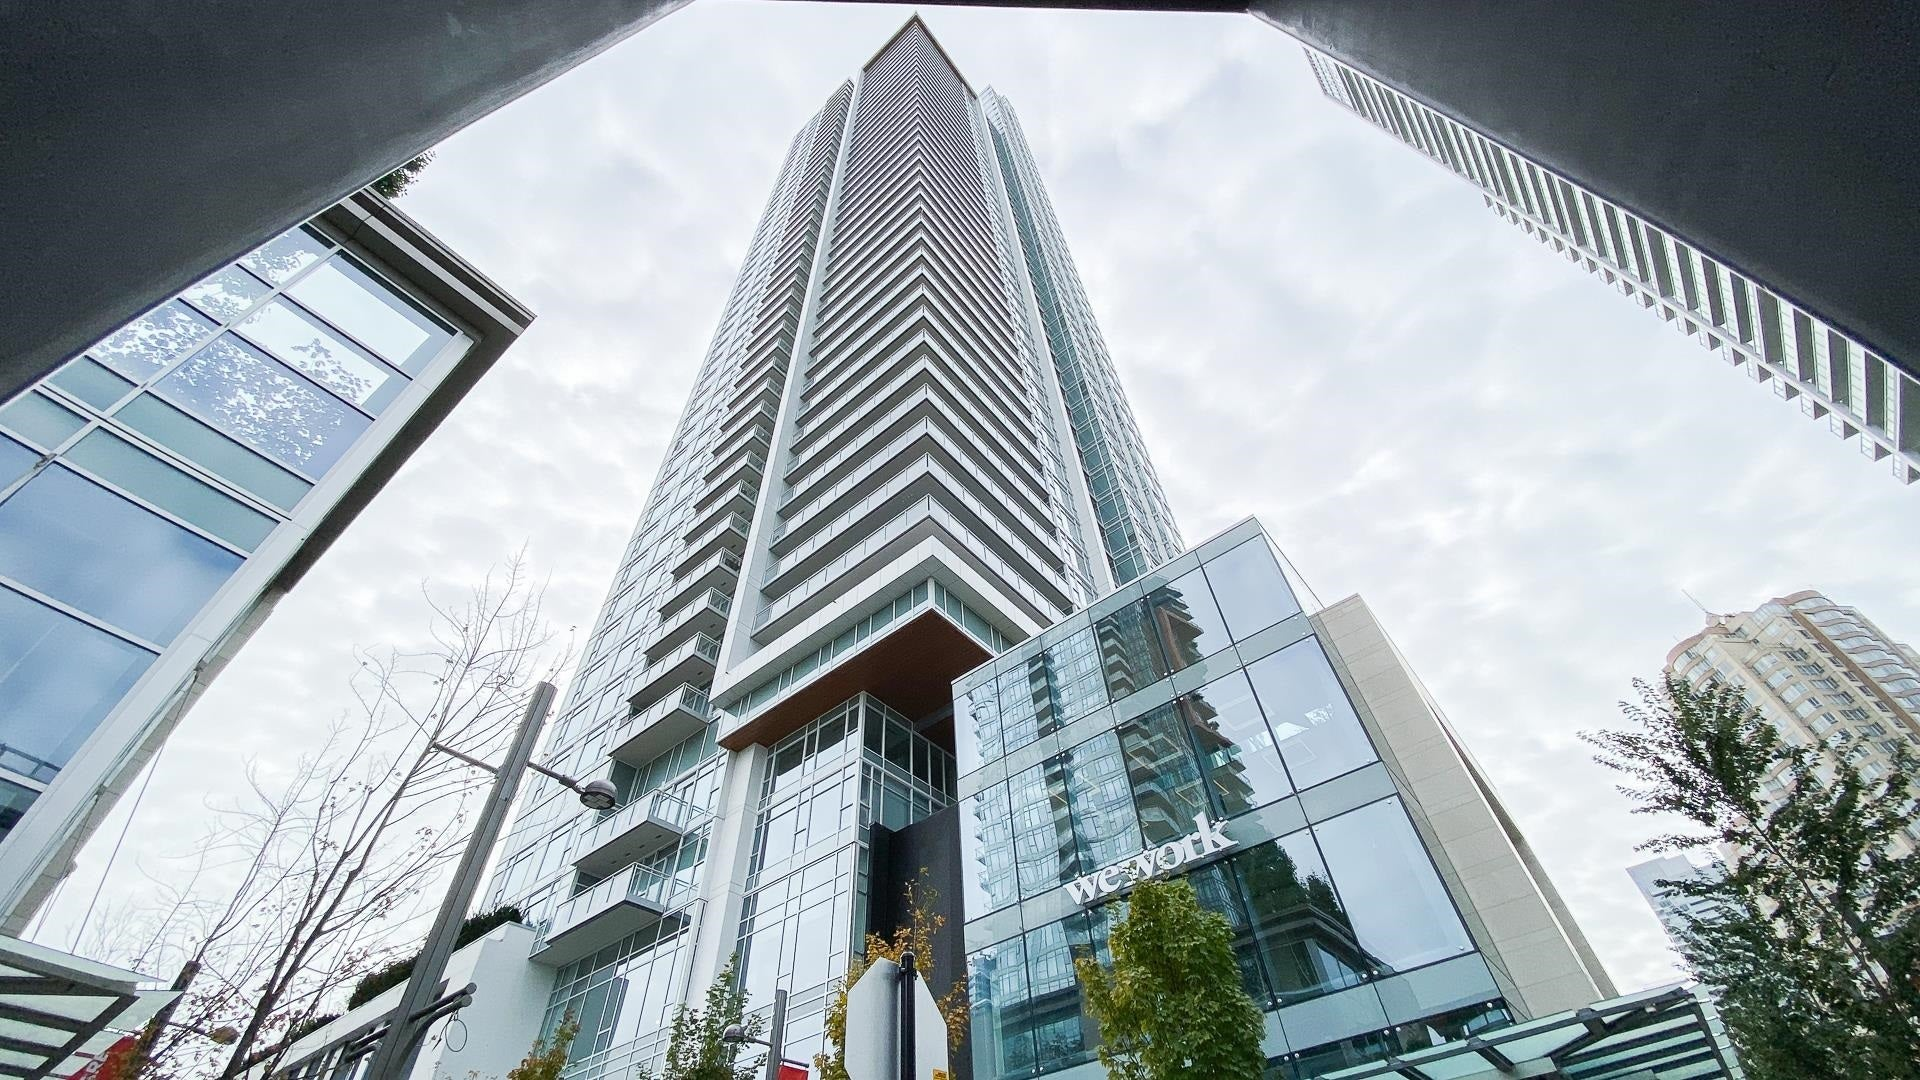 2510 4670 ASSEMBLY WAY - Metrotown Apartment/Condo for sale, 2 Bedrooms (R2625732) - #1